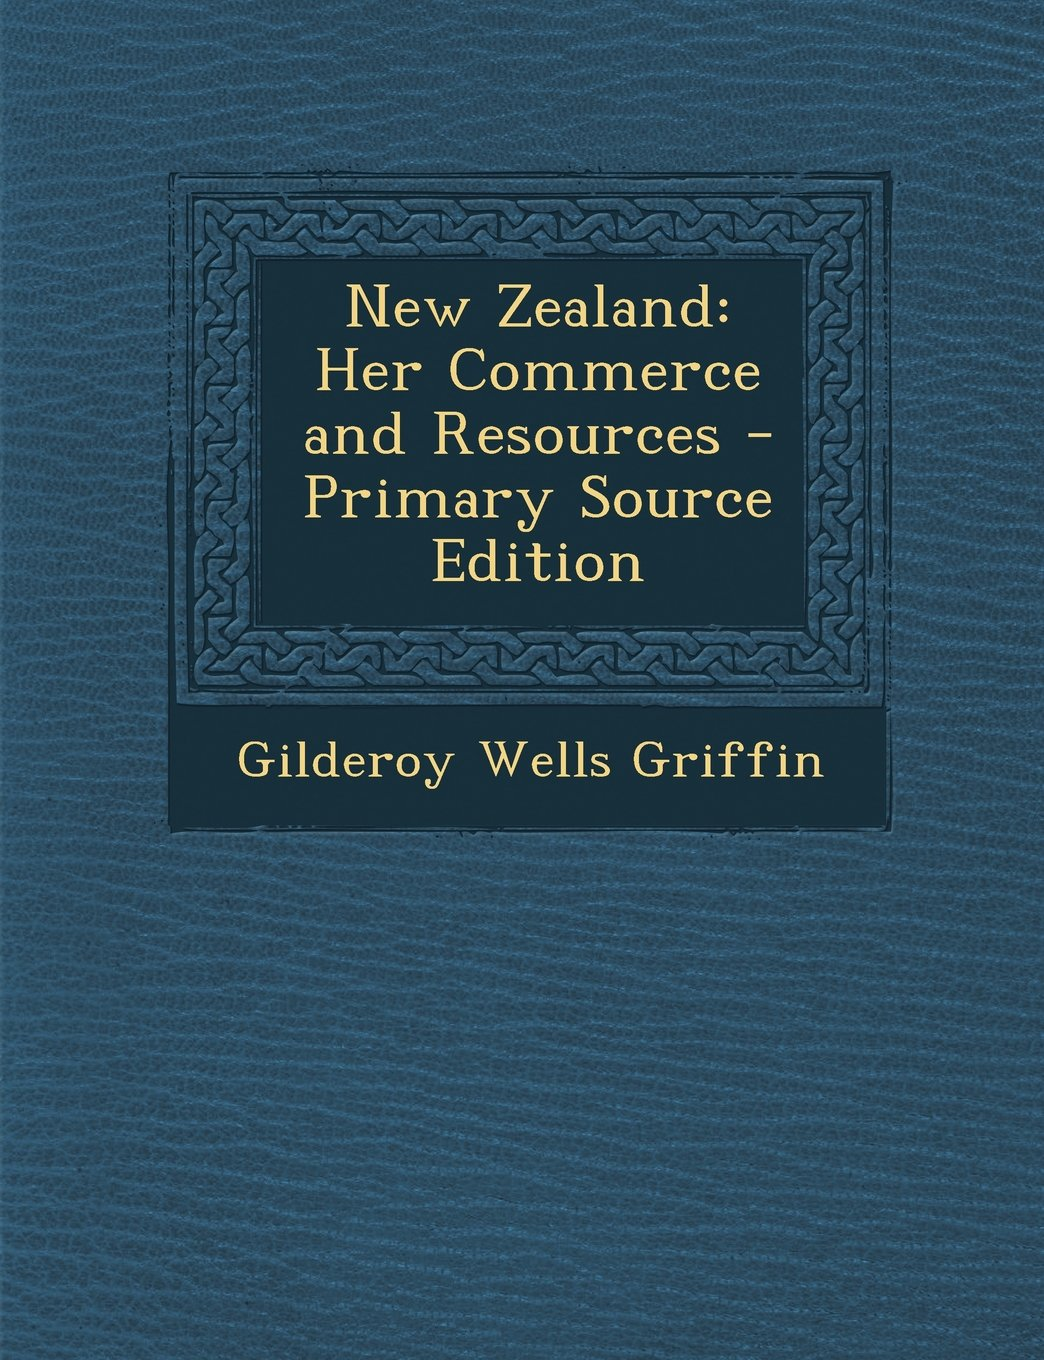 New Zealand: Her Commerce and Resources - Primary Source Edition PDF